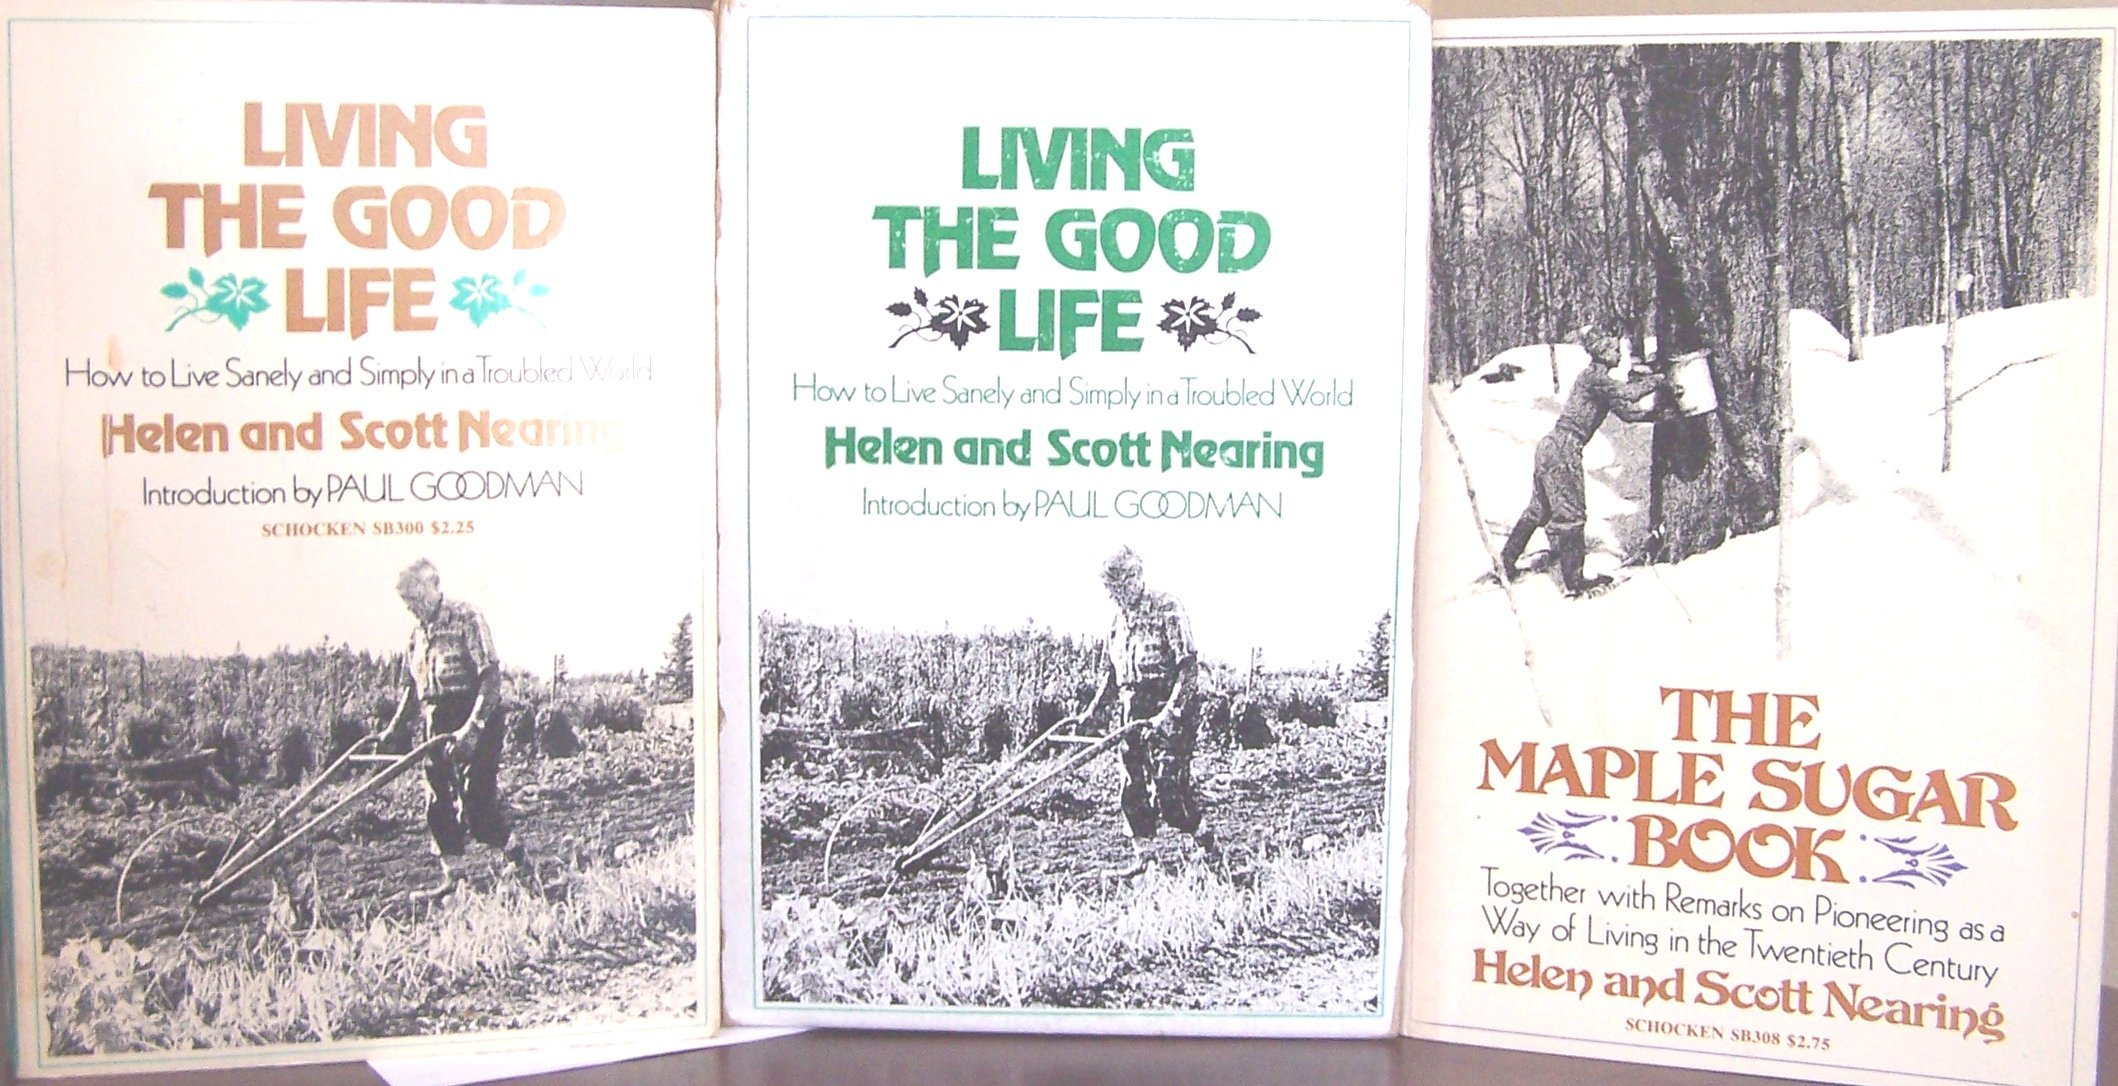 Living the Good Life & The Maple Sugar Book, Nearing, Helen and Scott